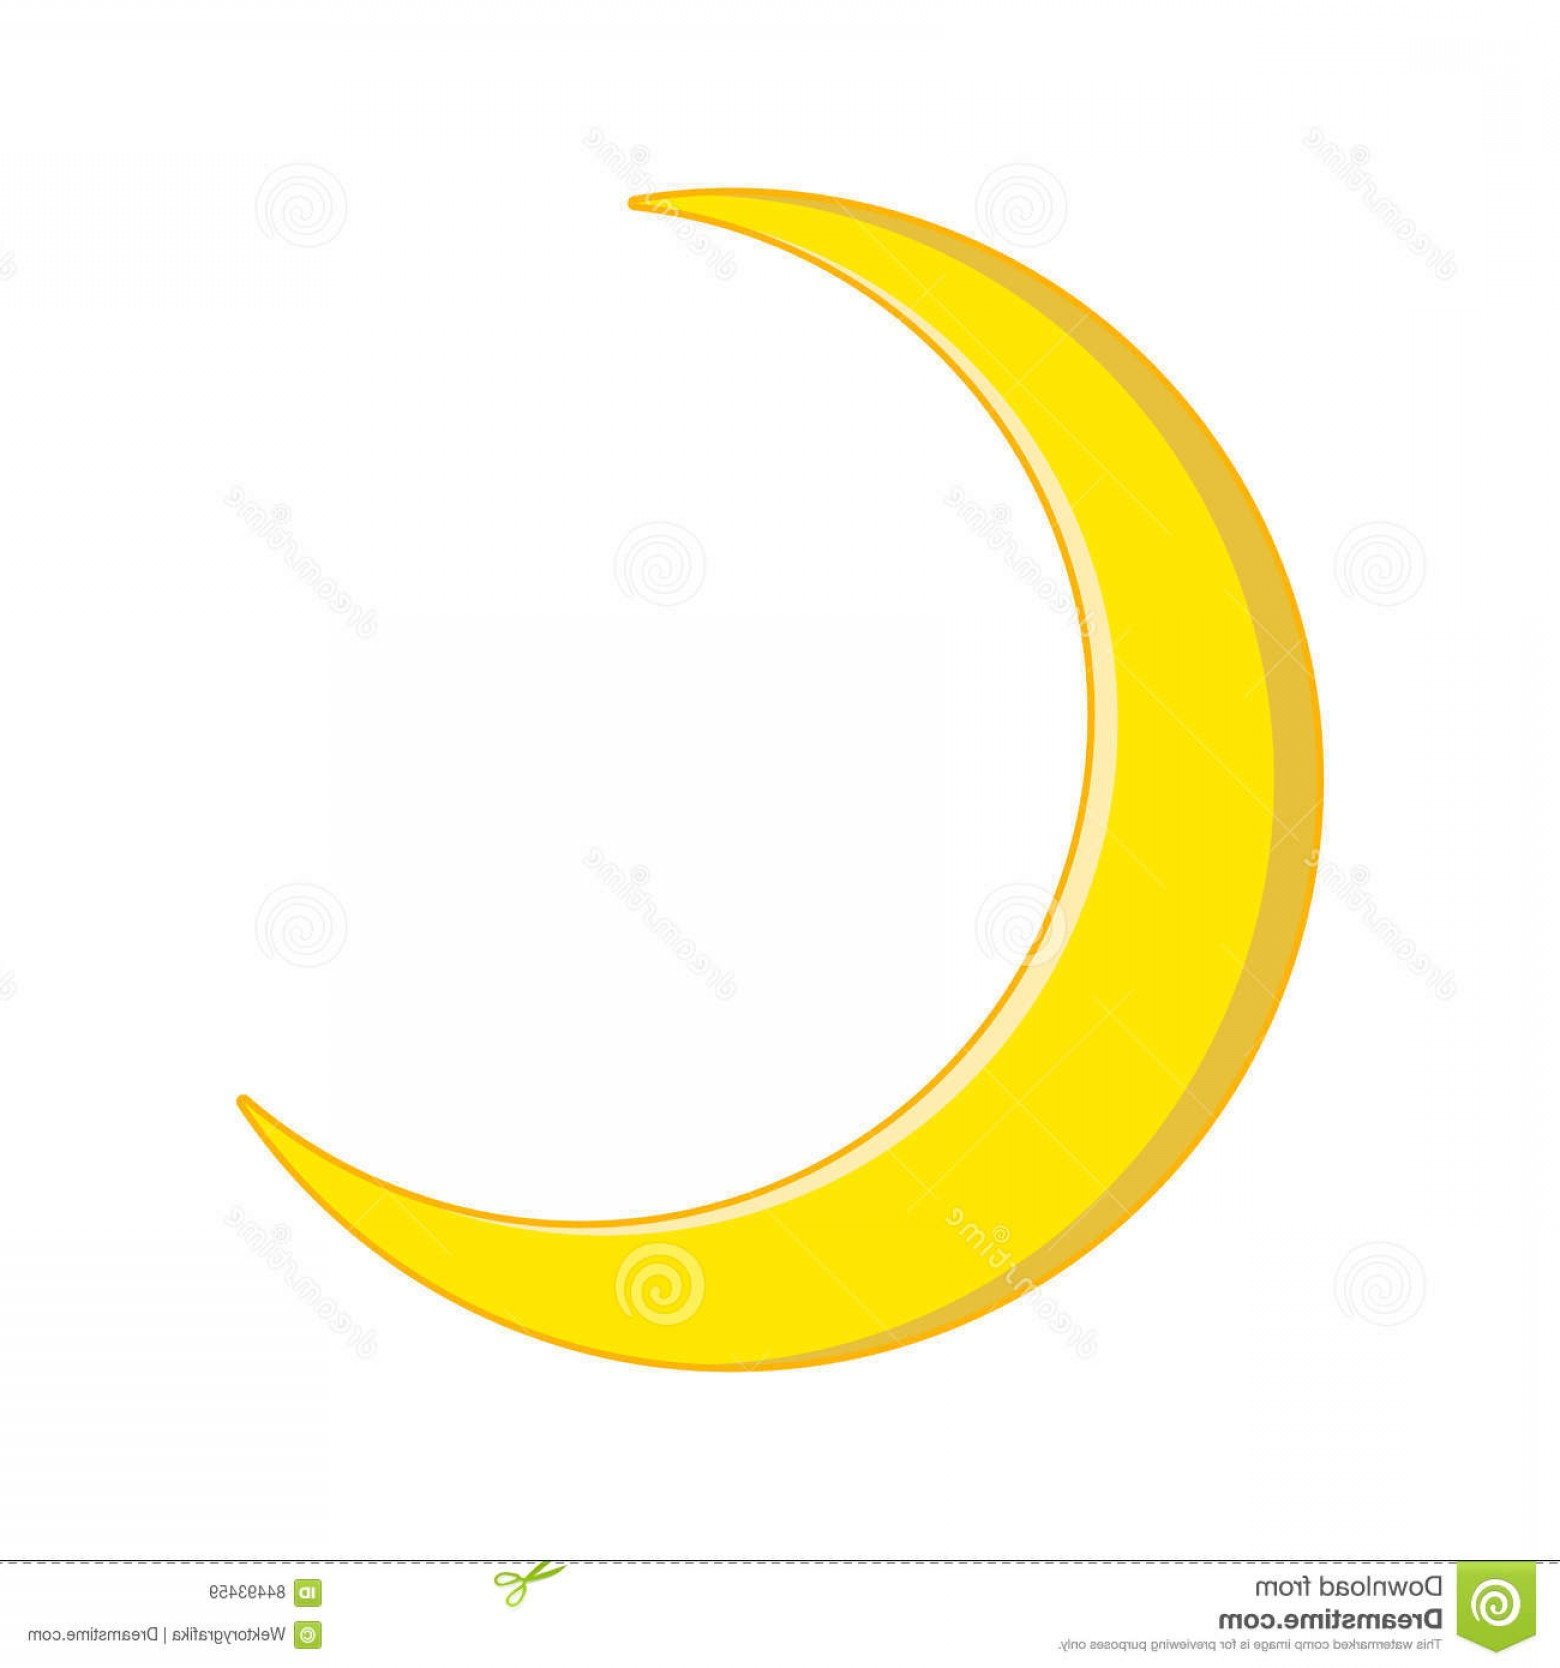 Cresent Moon Vector: Stock Illustration Crescent Moon Vector Symbol Icon Design Beautiful Illustration Isolated White Background Image